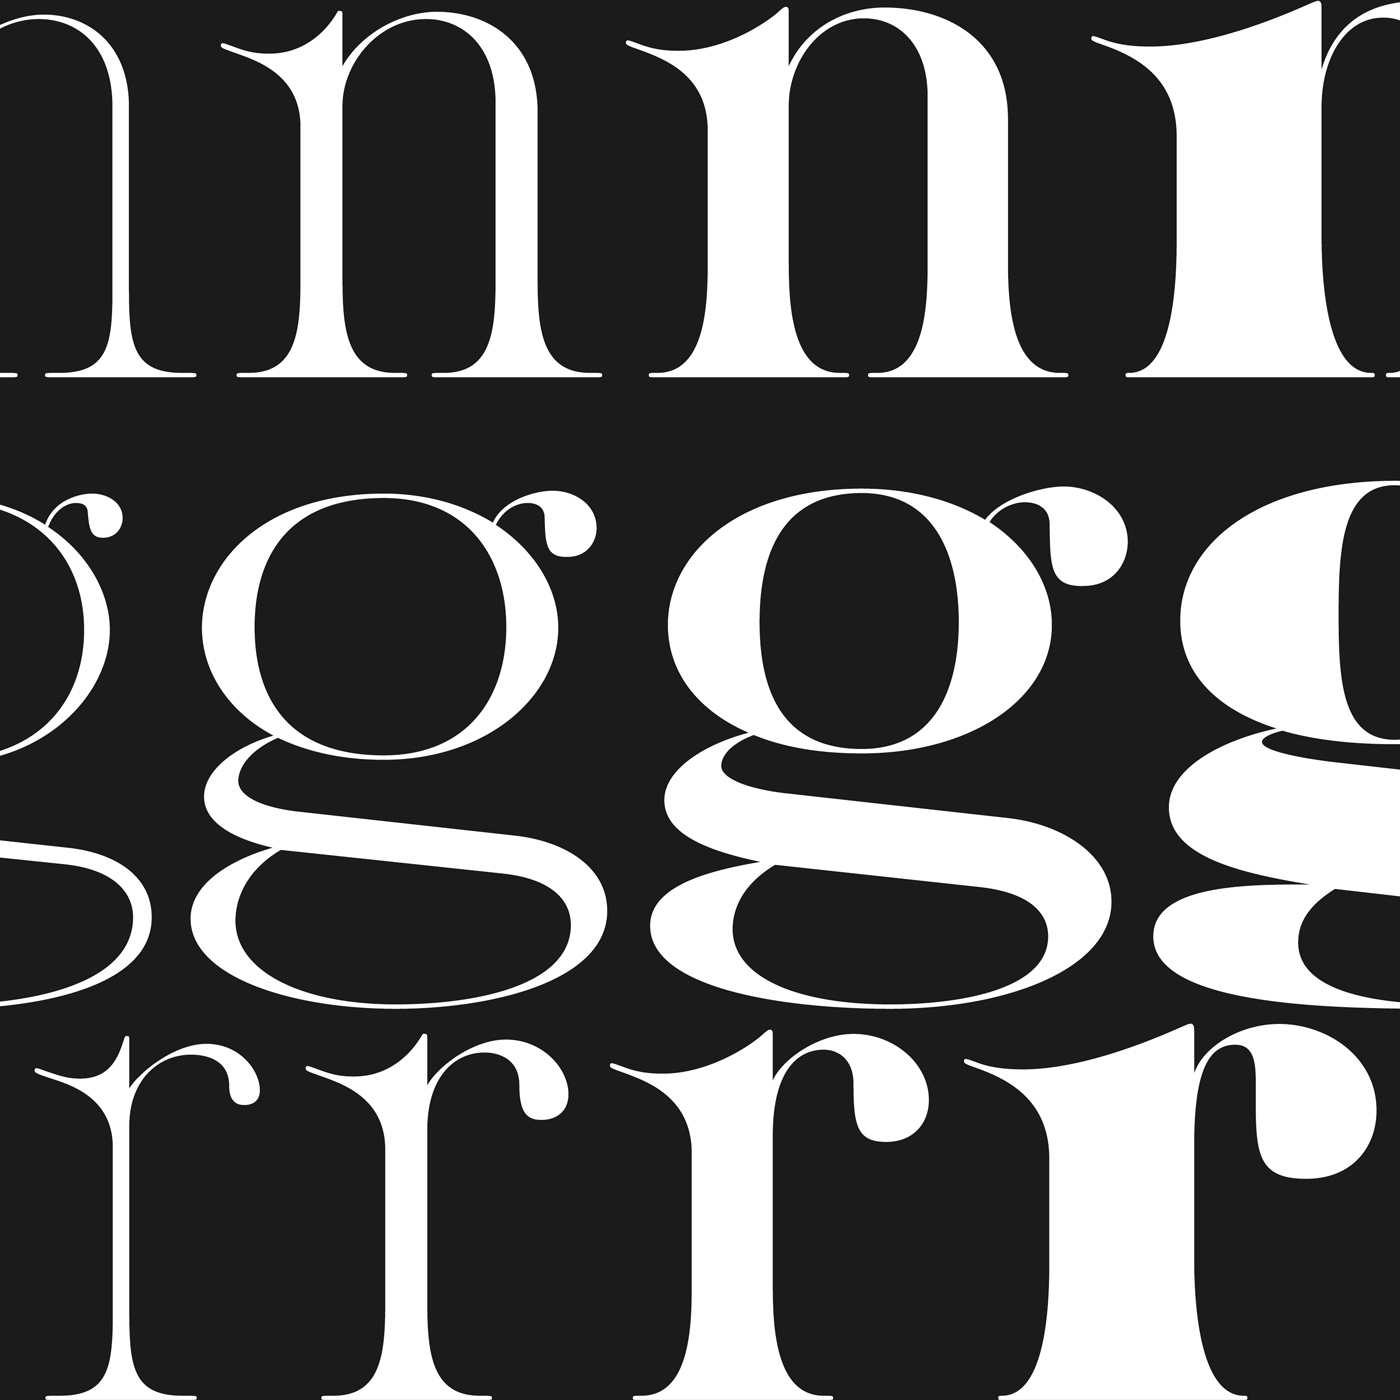 11 collide24 Lou Rainaldo Anne Dauphine Borione - The typeface 'Aliénor' by Anne-Dauphine Borione and Lou Rainaldo is a mixture of elegance and extravagance